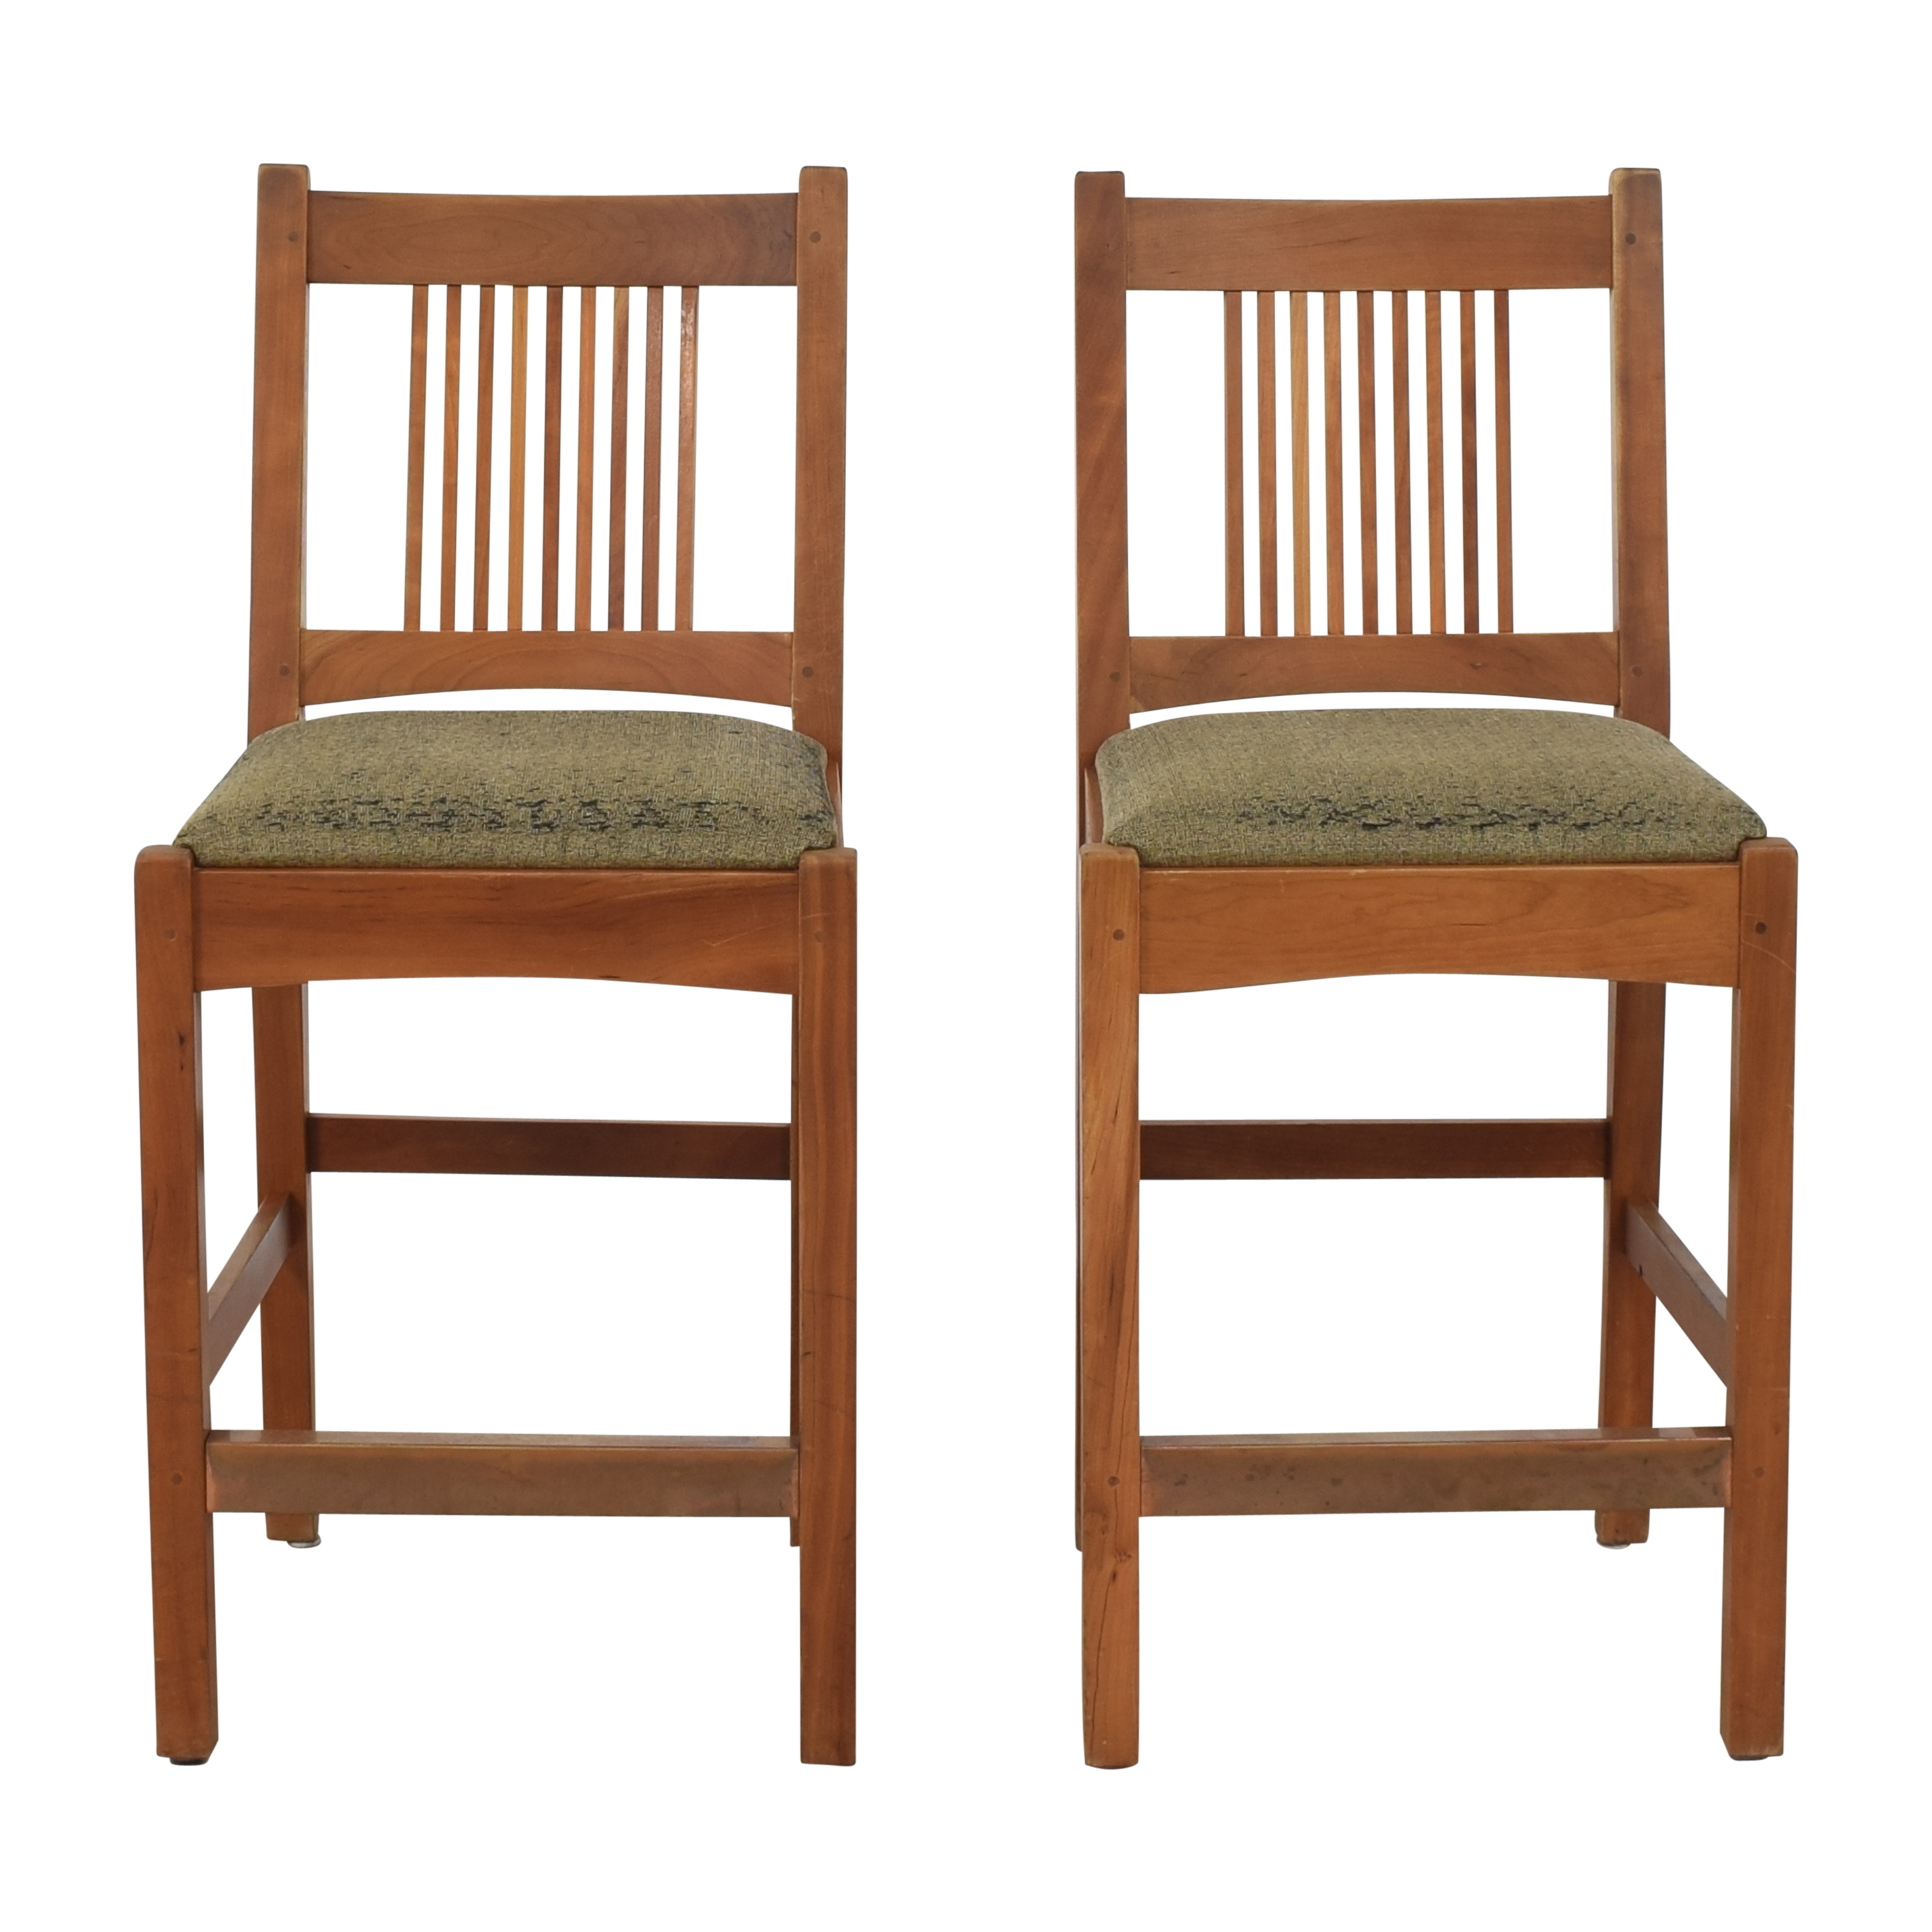 Stickley Furniture Stickley Furniture Mission Collection Spindle Counter Stools on sale